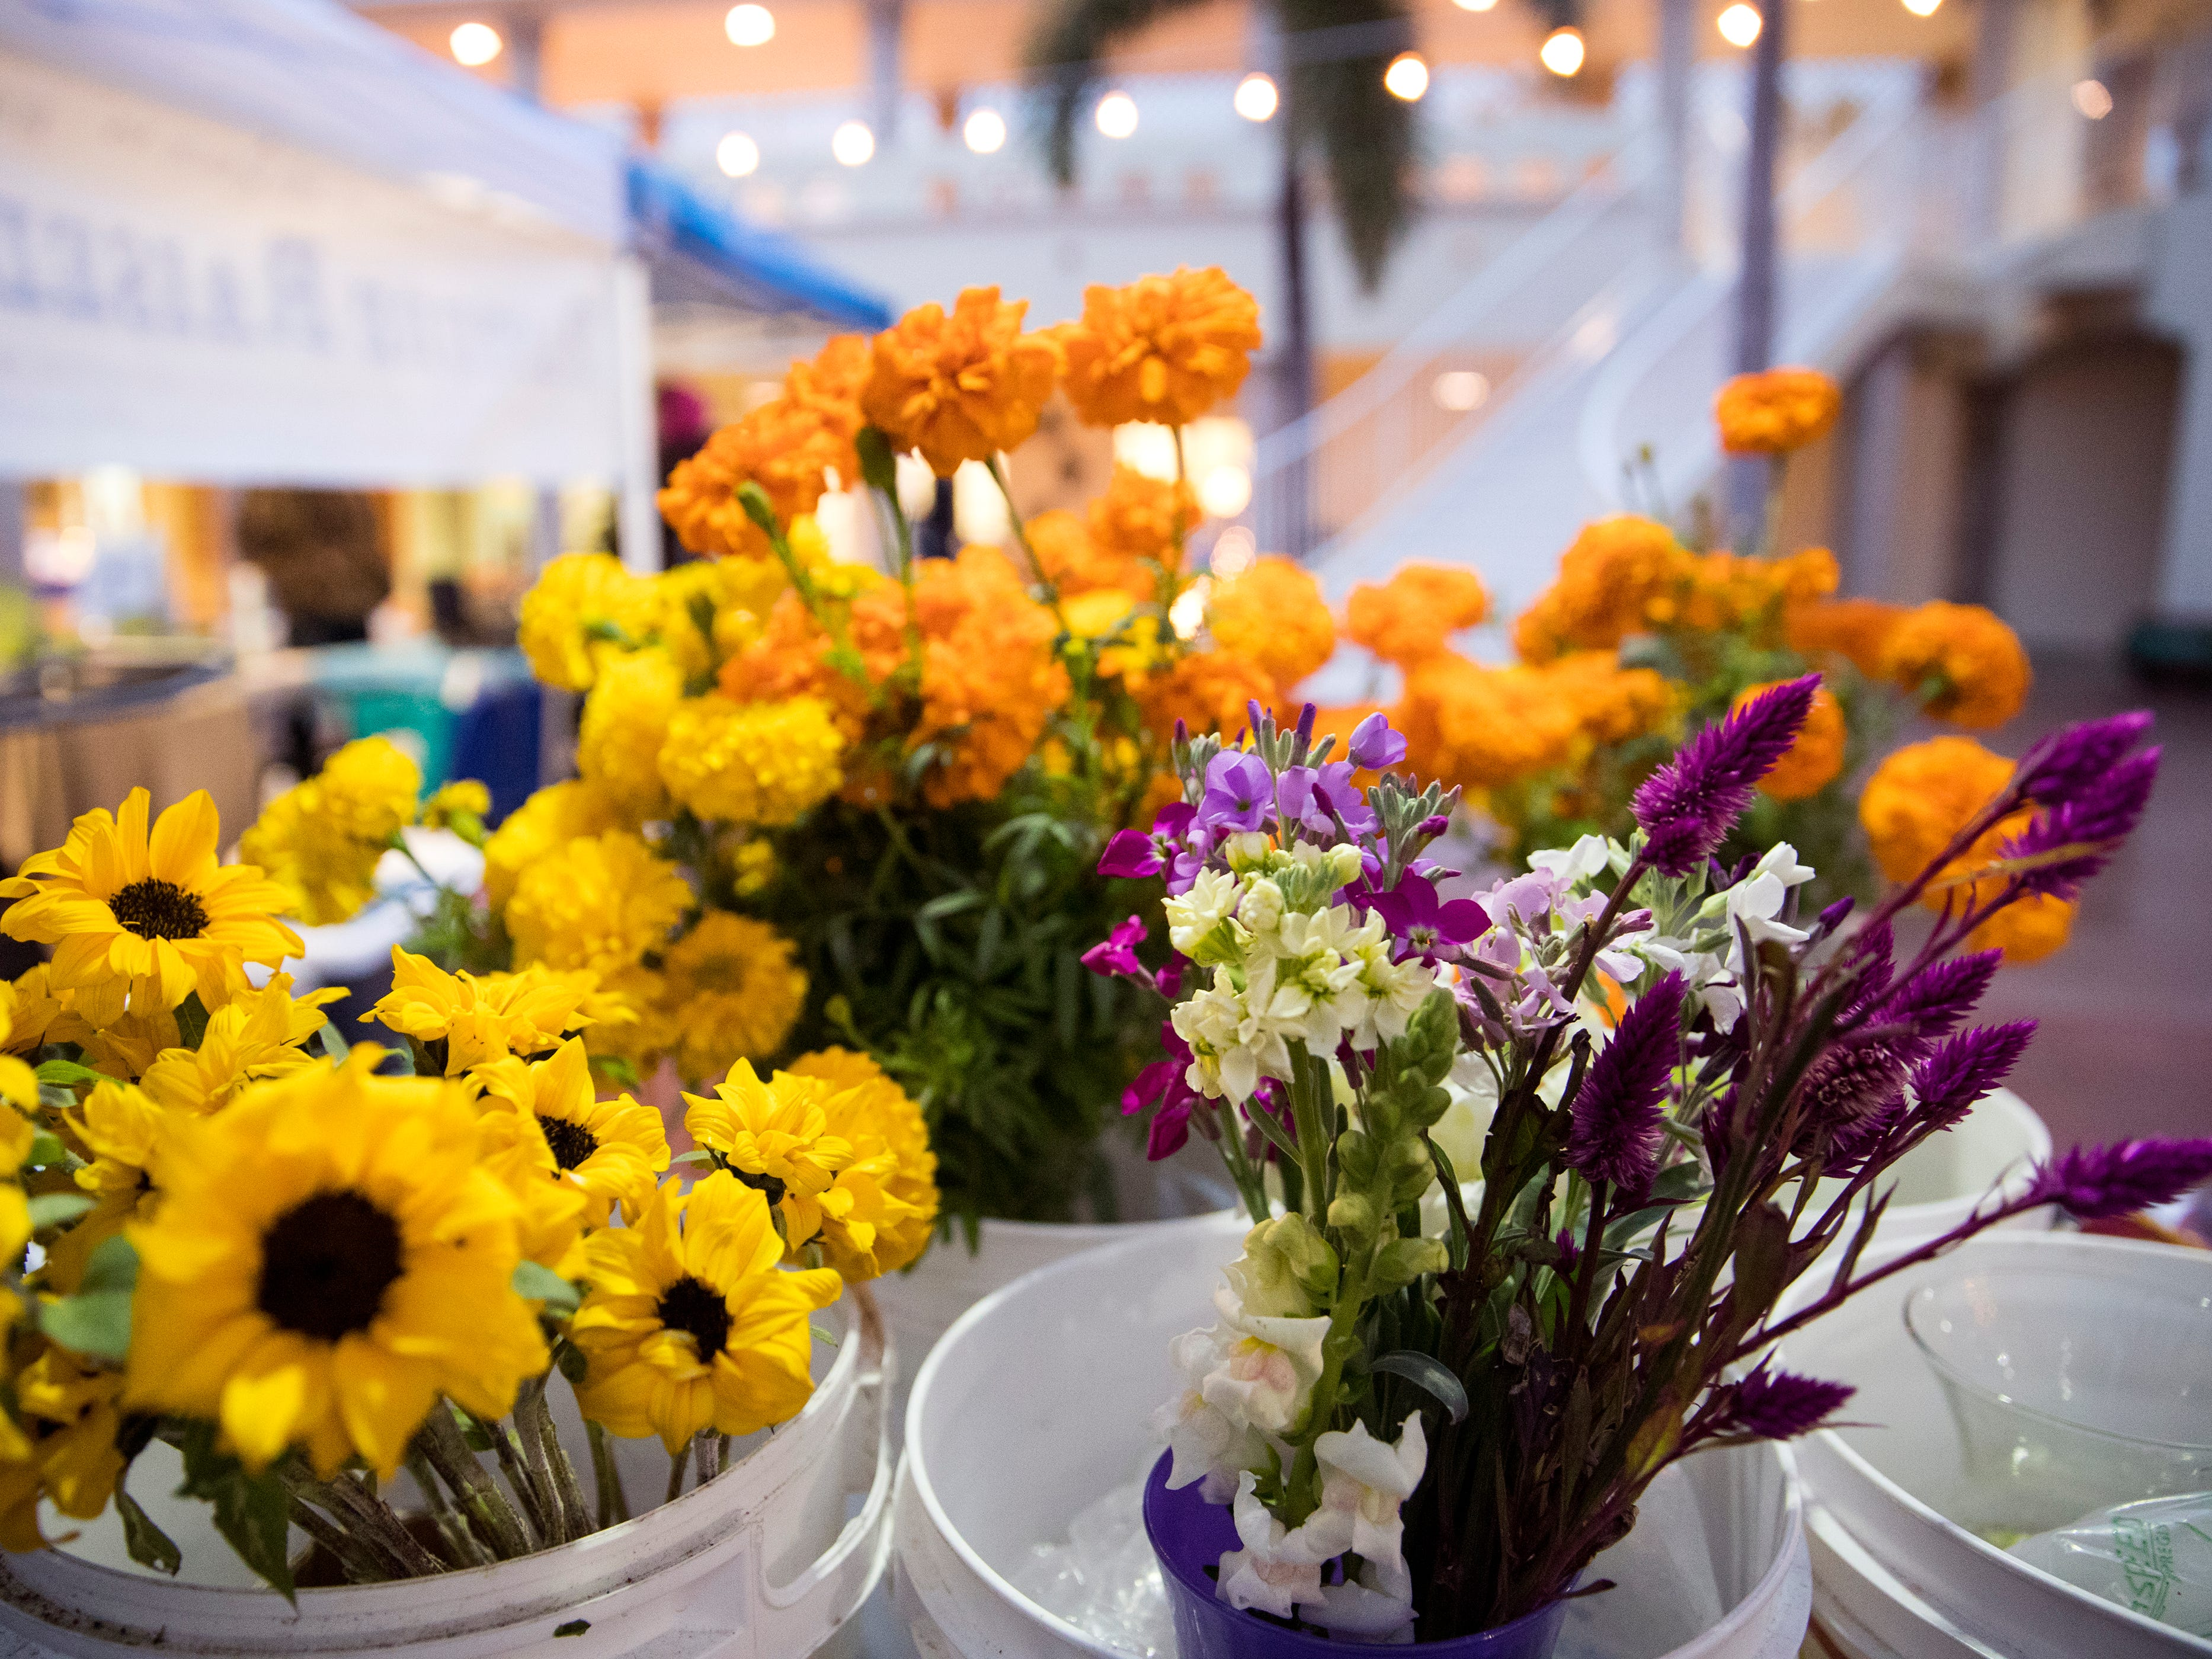 The Corpus Christi Downtown Farmers Market offers items such as fresh flowers at their weekly market. It is open weekly on Wednesday from 5 to 8 pm at 100 N. Shoreline Blvd.